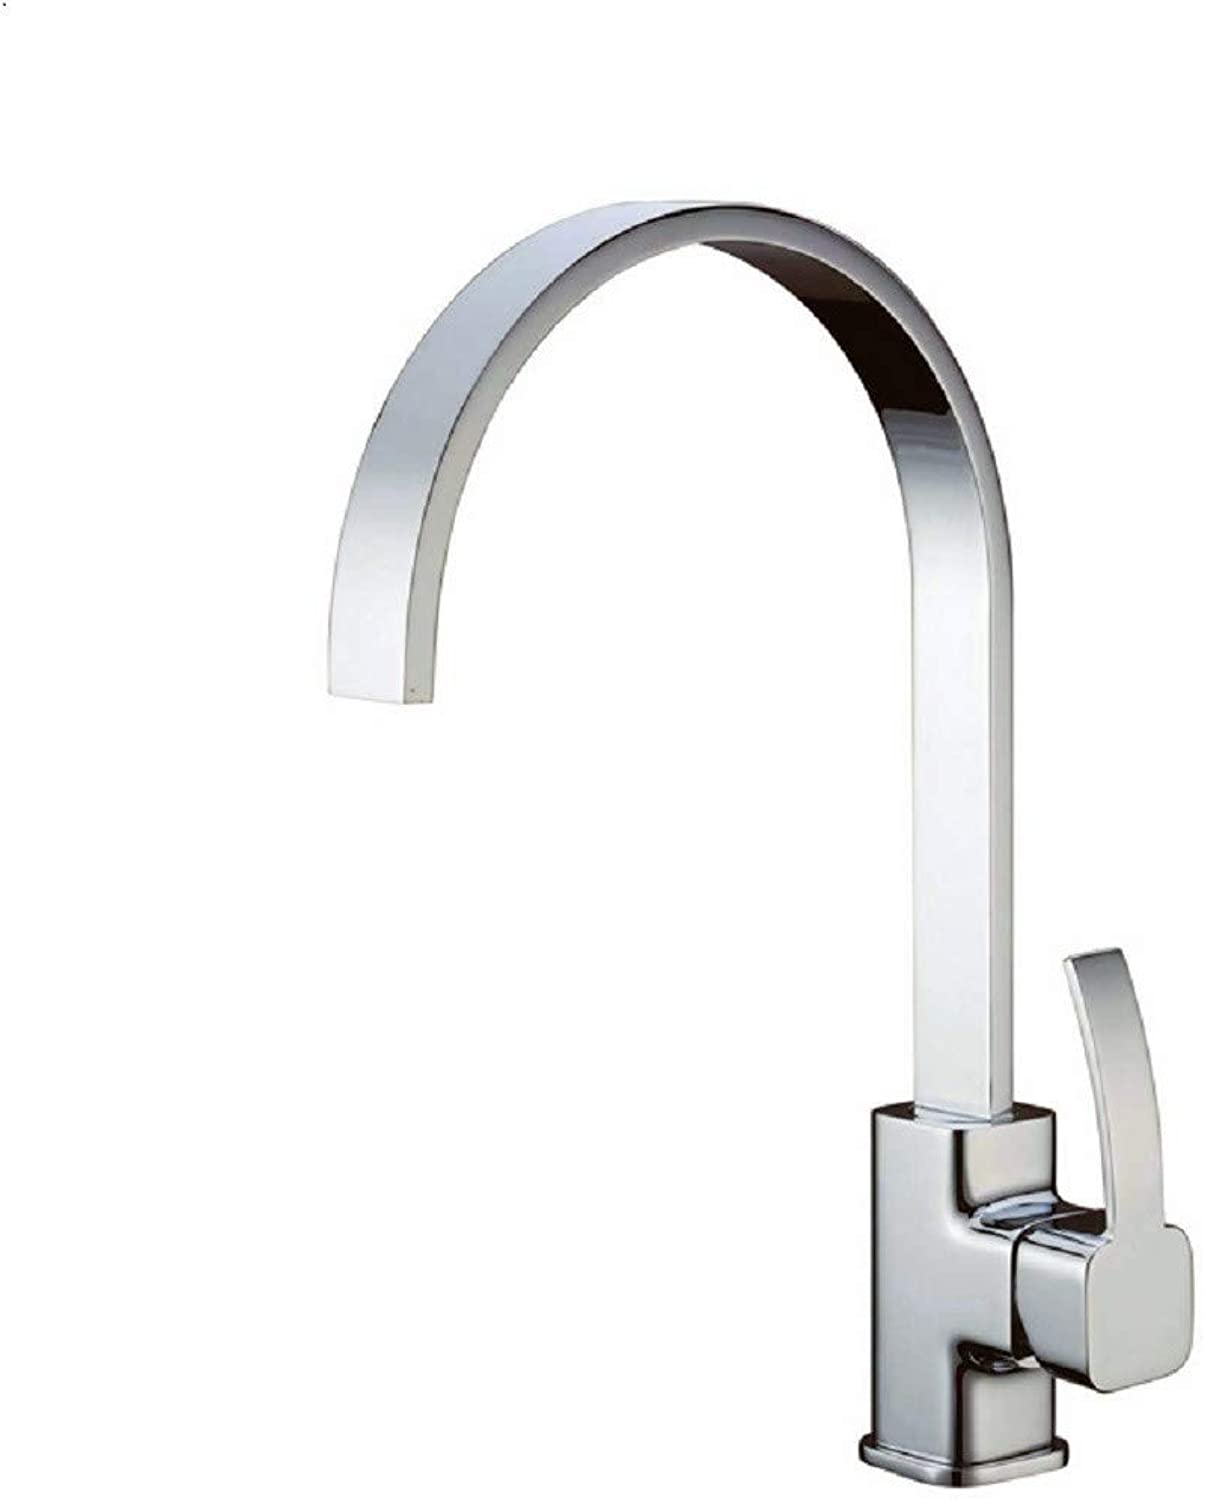 Kitchen Tap Lead-Free Single-Handed Kitchen Pot Hot and Cold Water Kitchen Taps Kitchen Sink Mixer Taps Basin Tap